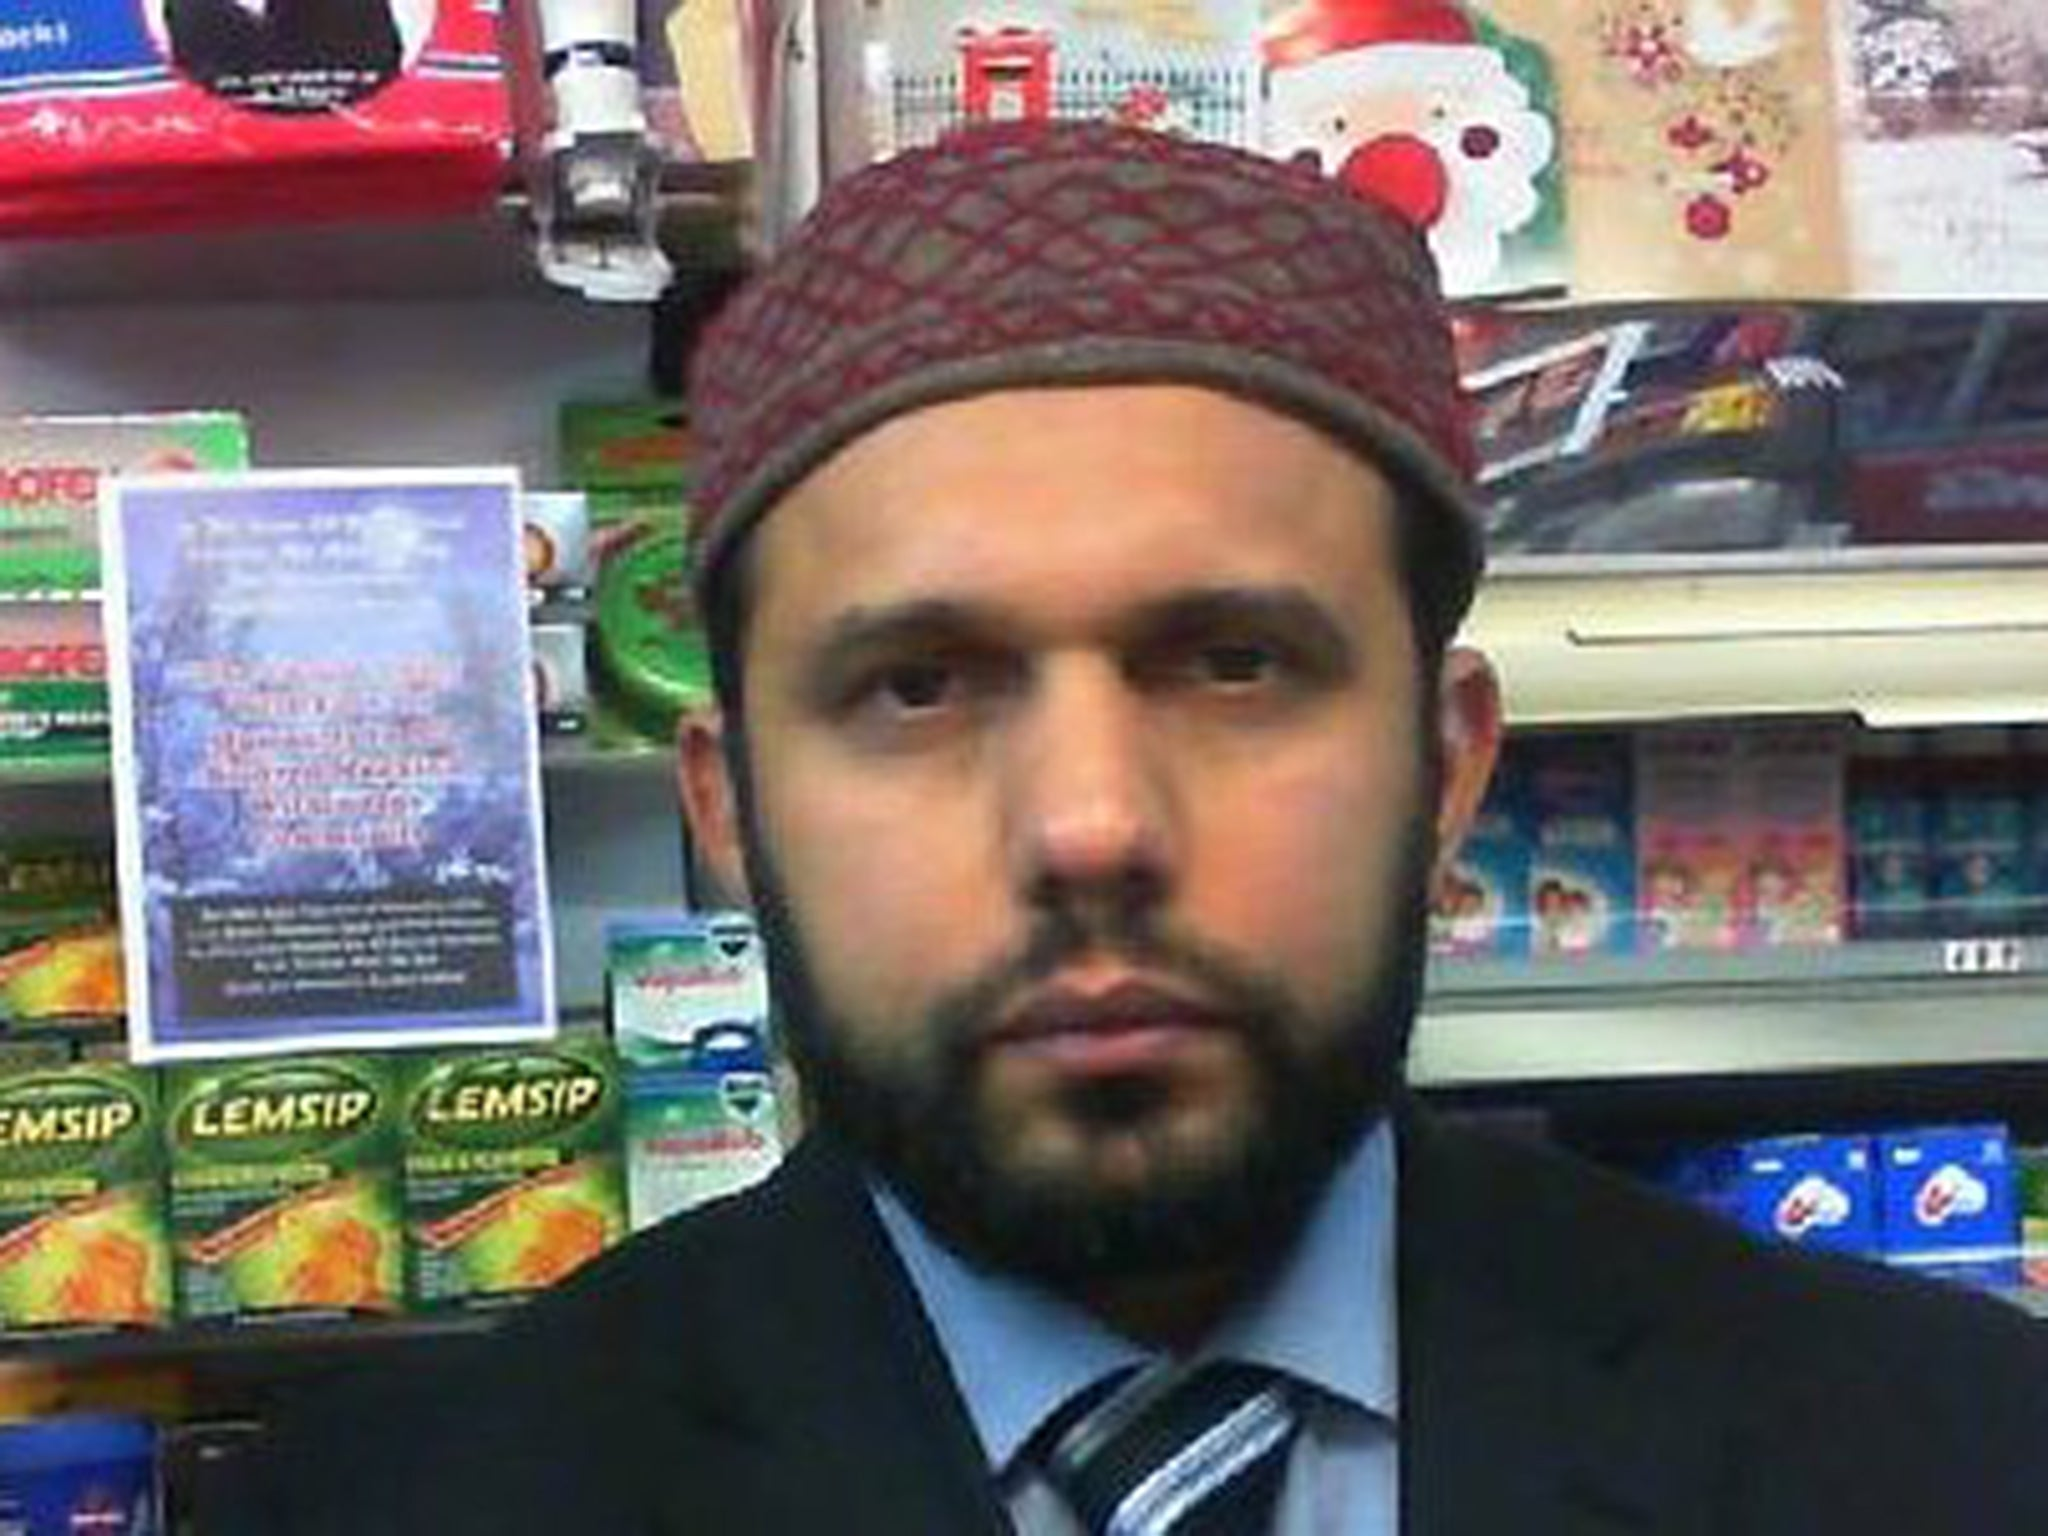 porters sideling muslim personals A smart, speedy take on the news from around the world.